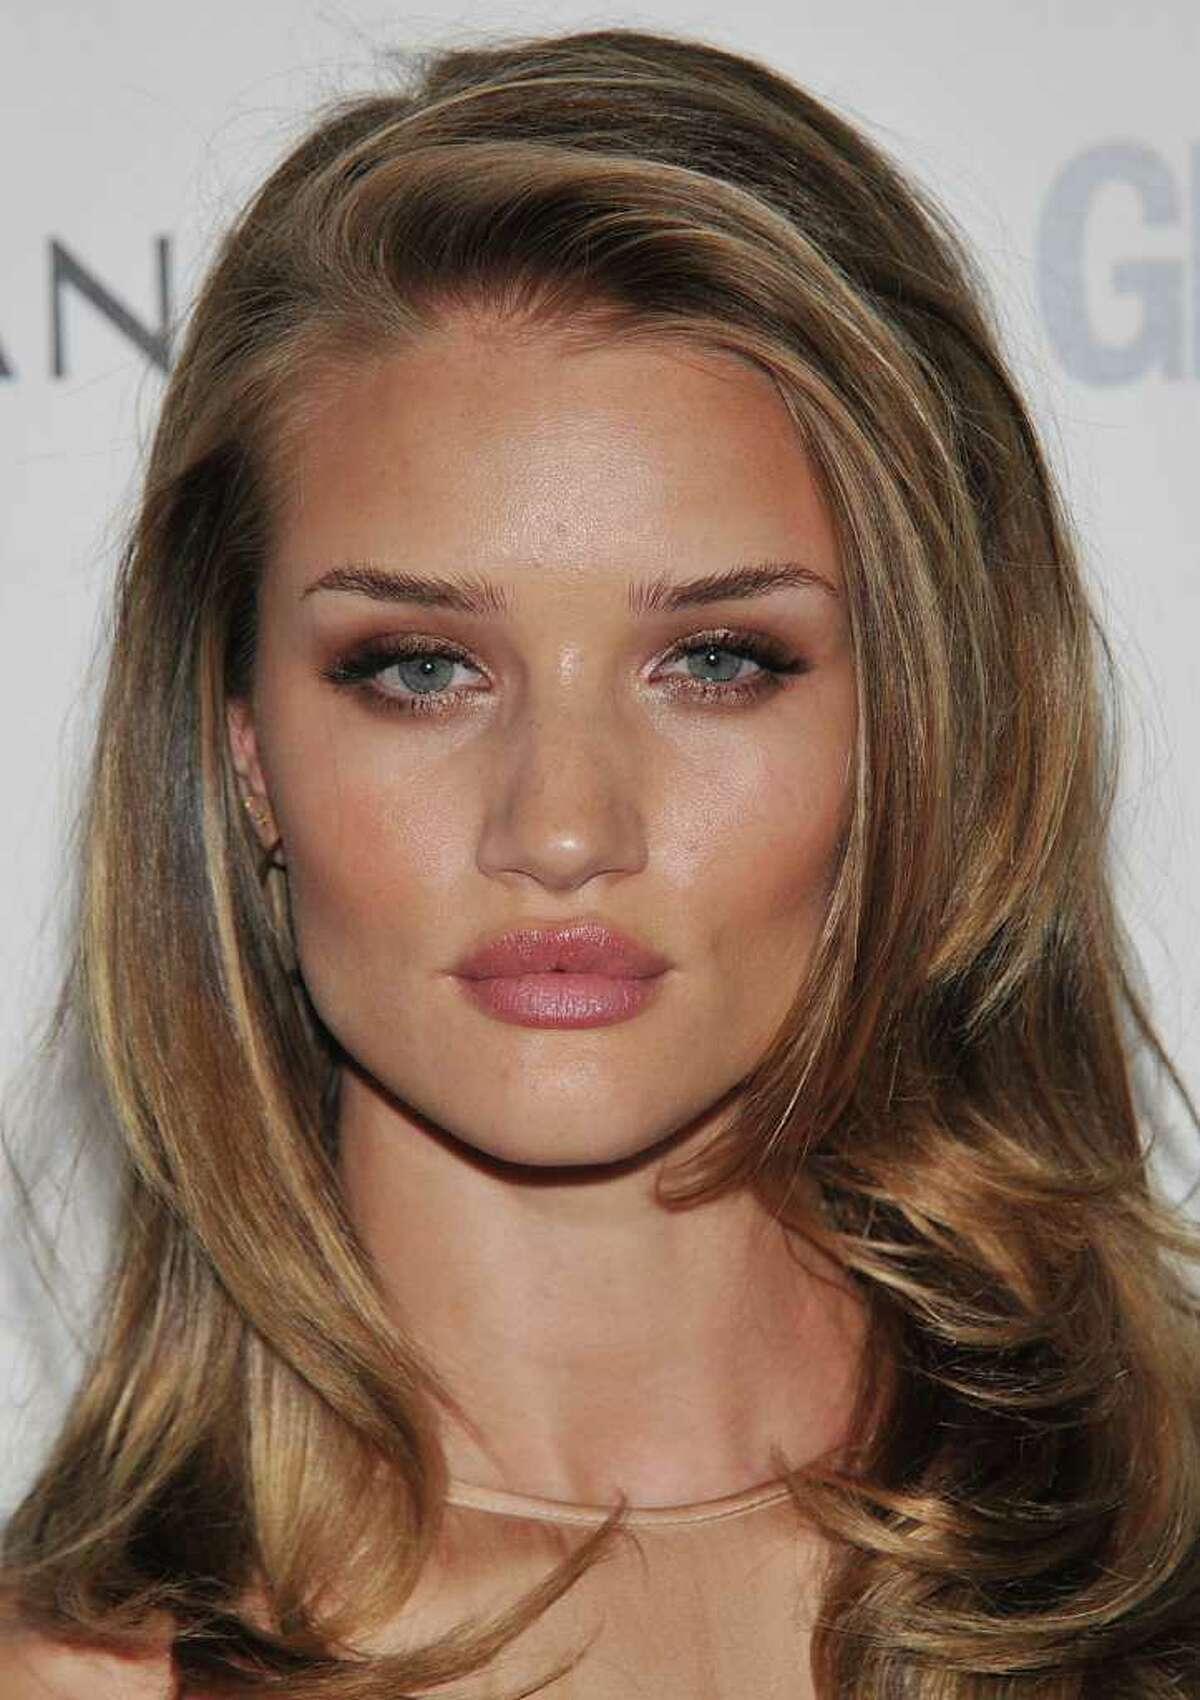 Rosie Huntington-Whiteley attends Glamour Women Of The Year Awards at Berkeley Square Gardens in London, England.